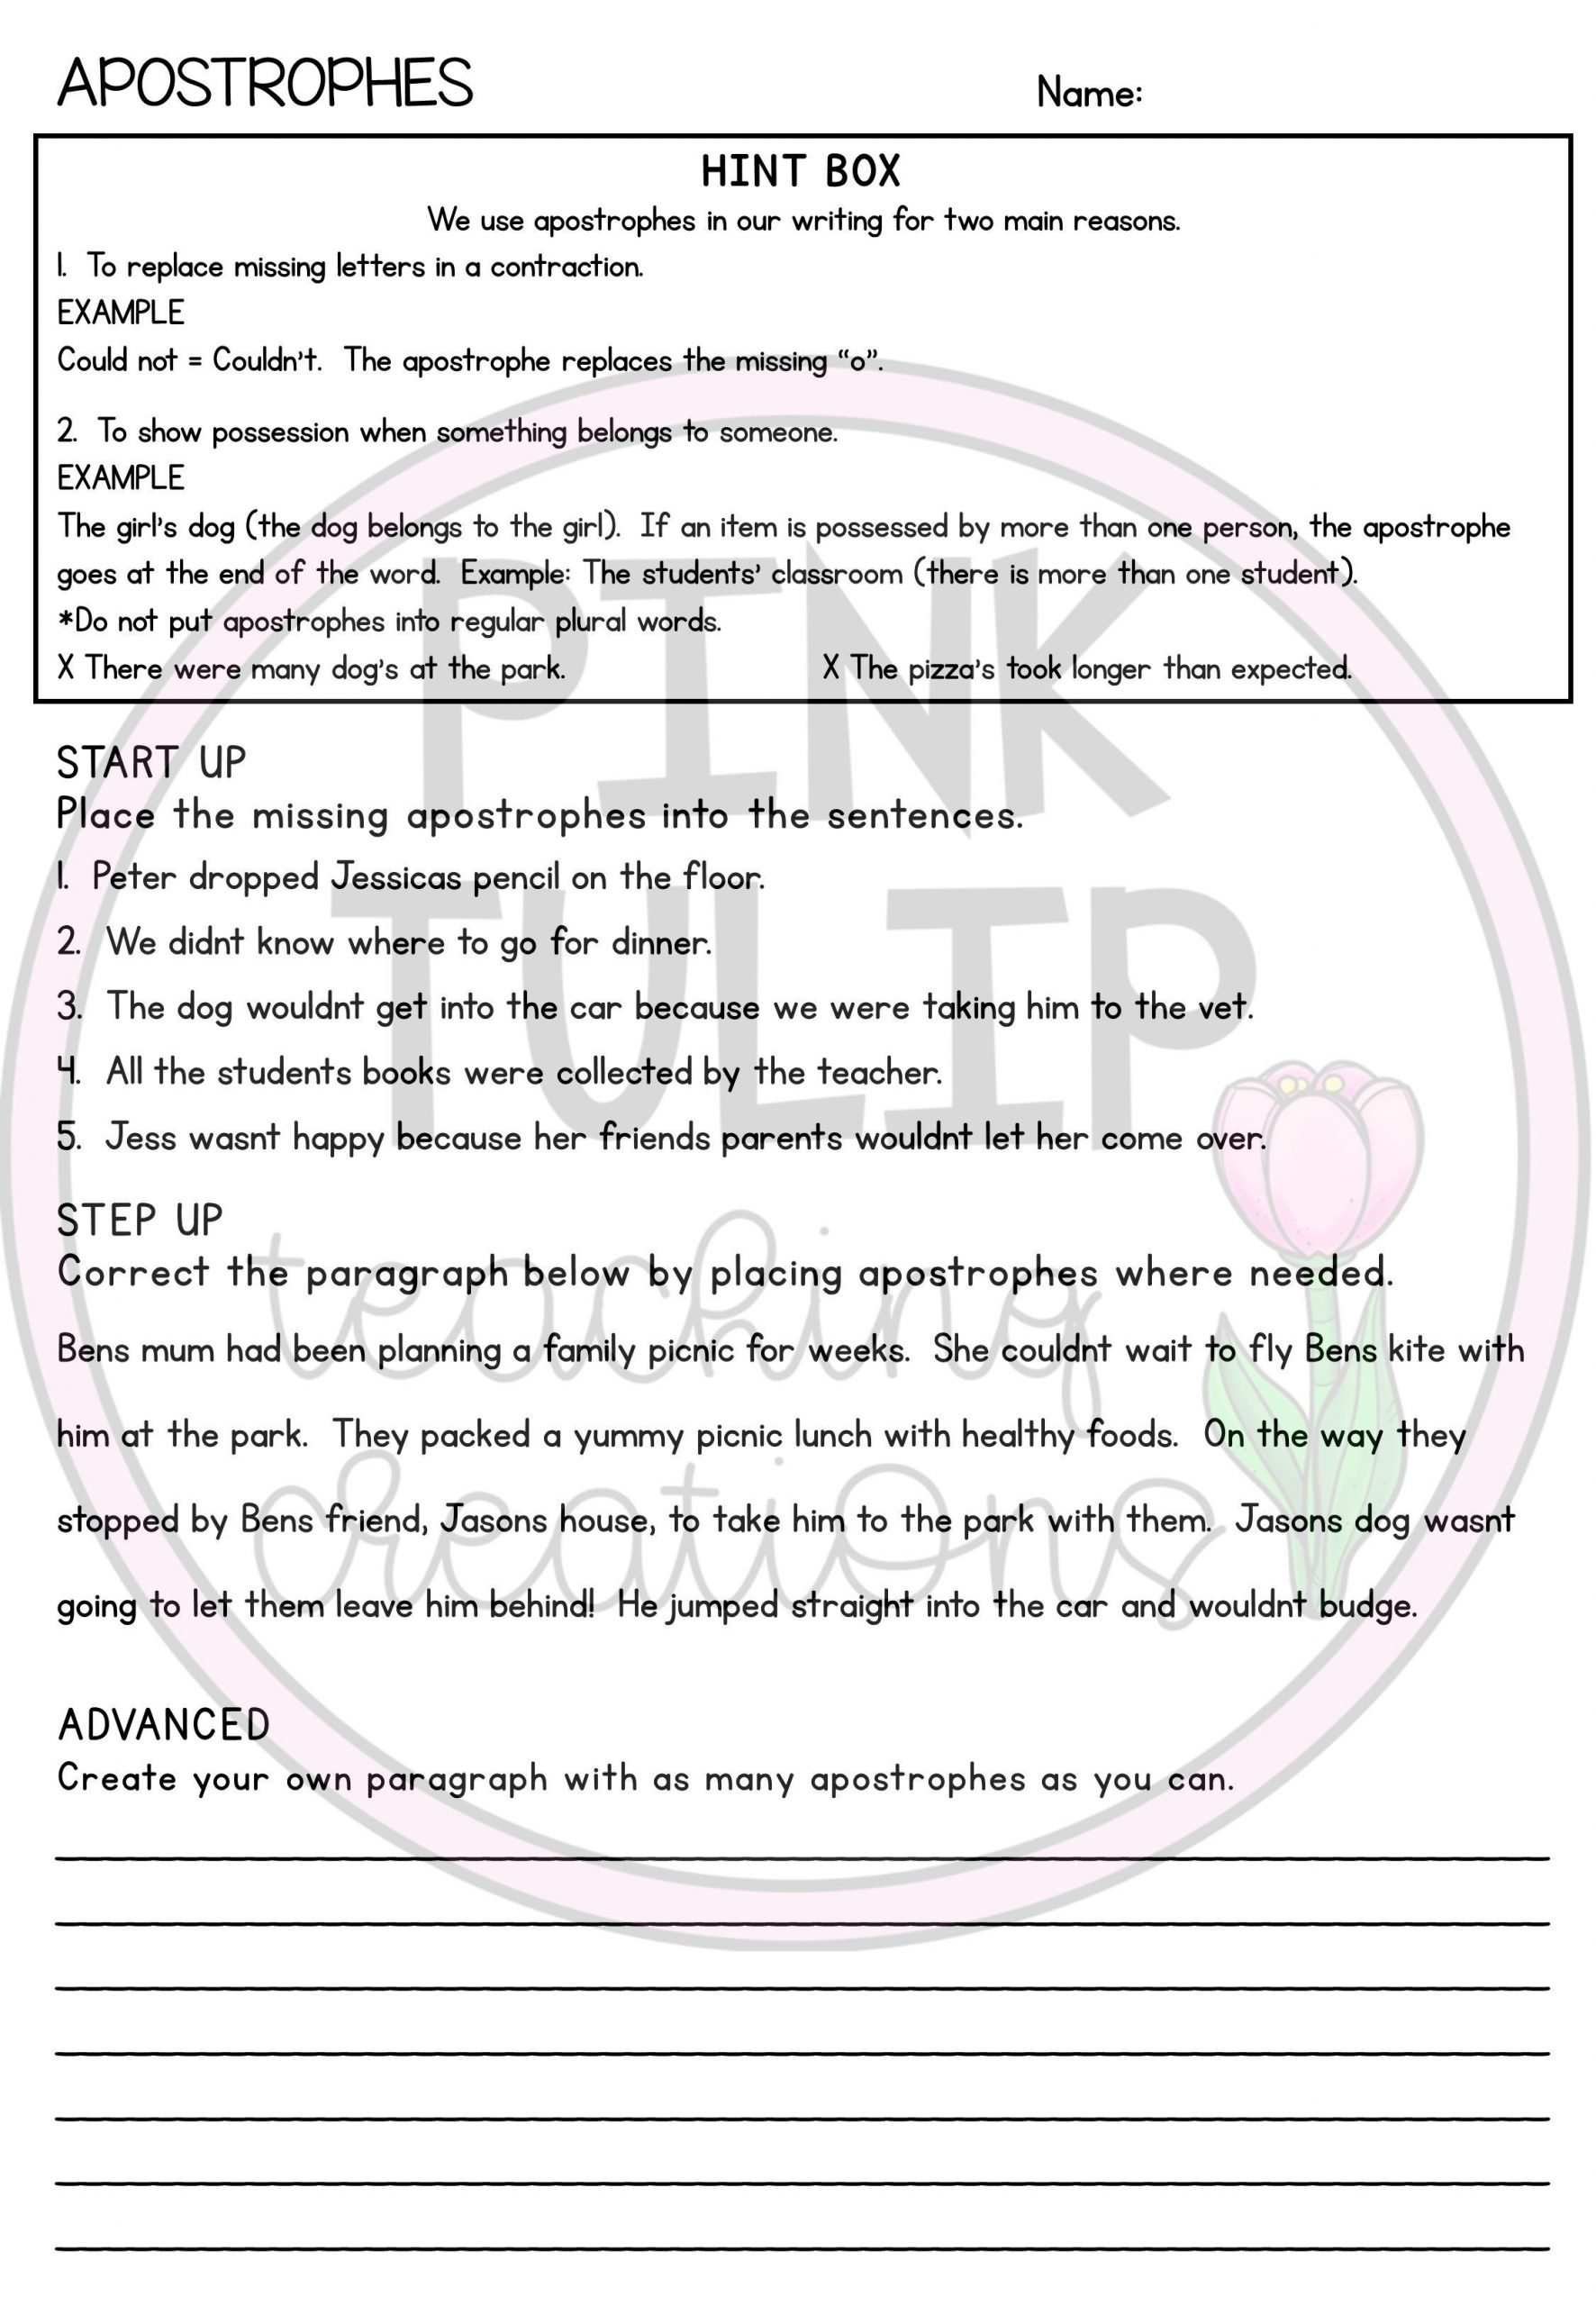 6th Grade Sentence Structure Worksheets Apostrophes and Speech Marks Grammar Worksheets with